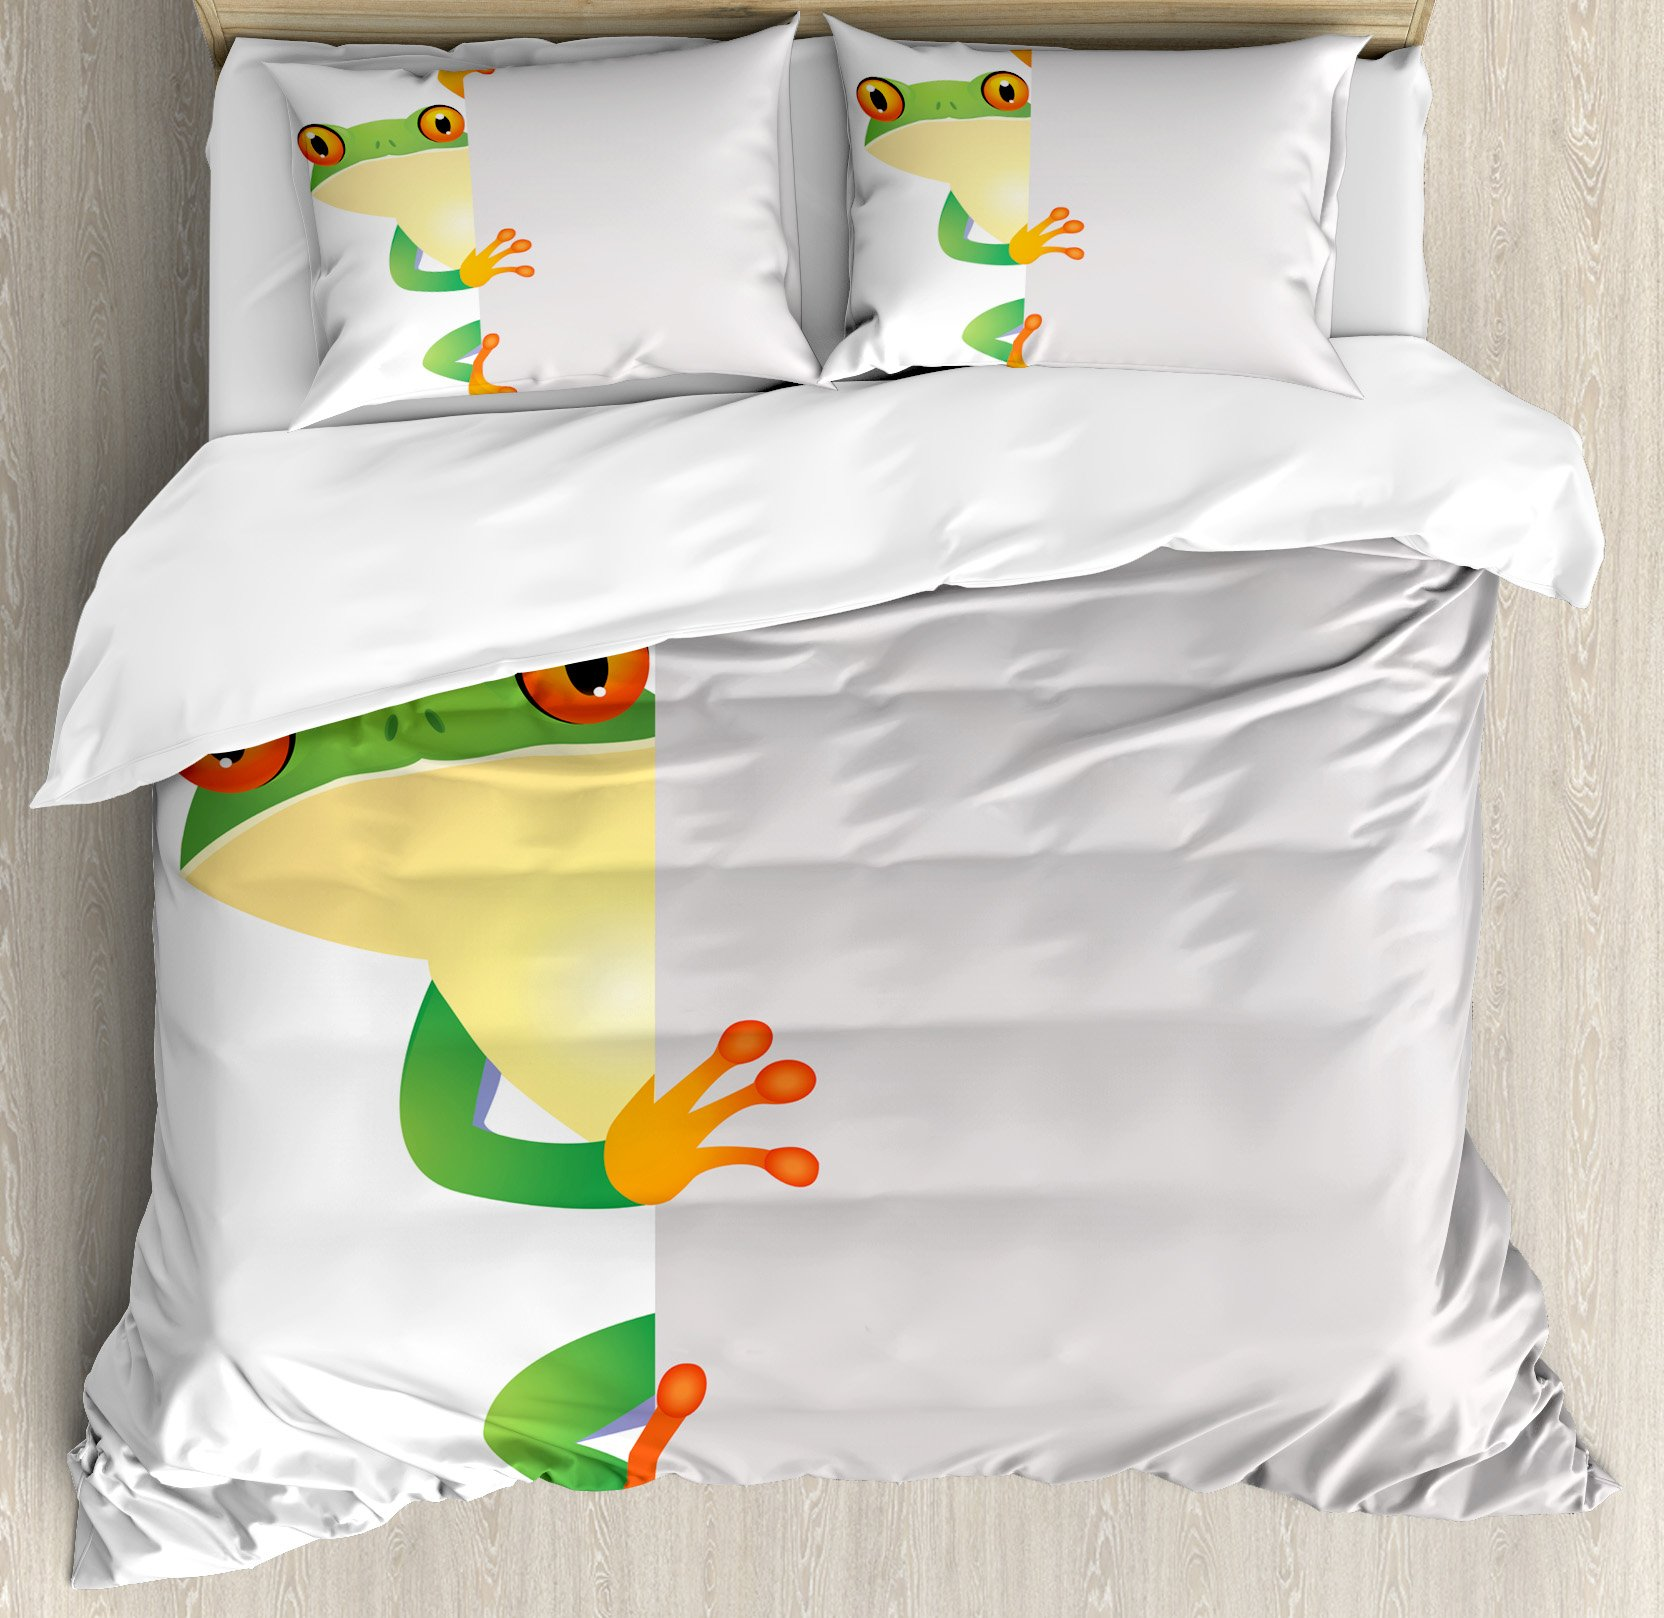 Reptiles Queen Size Duvet Cover Set by Ambesonne, Funky Frog Prince with Big Eyes on the Wall Camouflage Nursery Reptiles Decor, Decorative 3 Piece Bedding Set with 2 Pillow Shams, Green Yellow Orange by Ambesonne